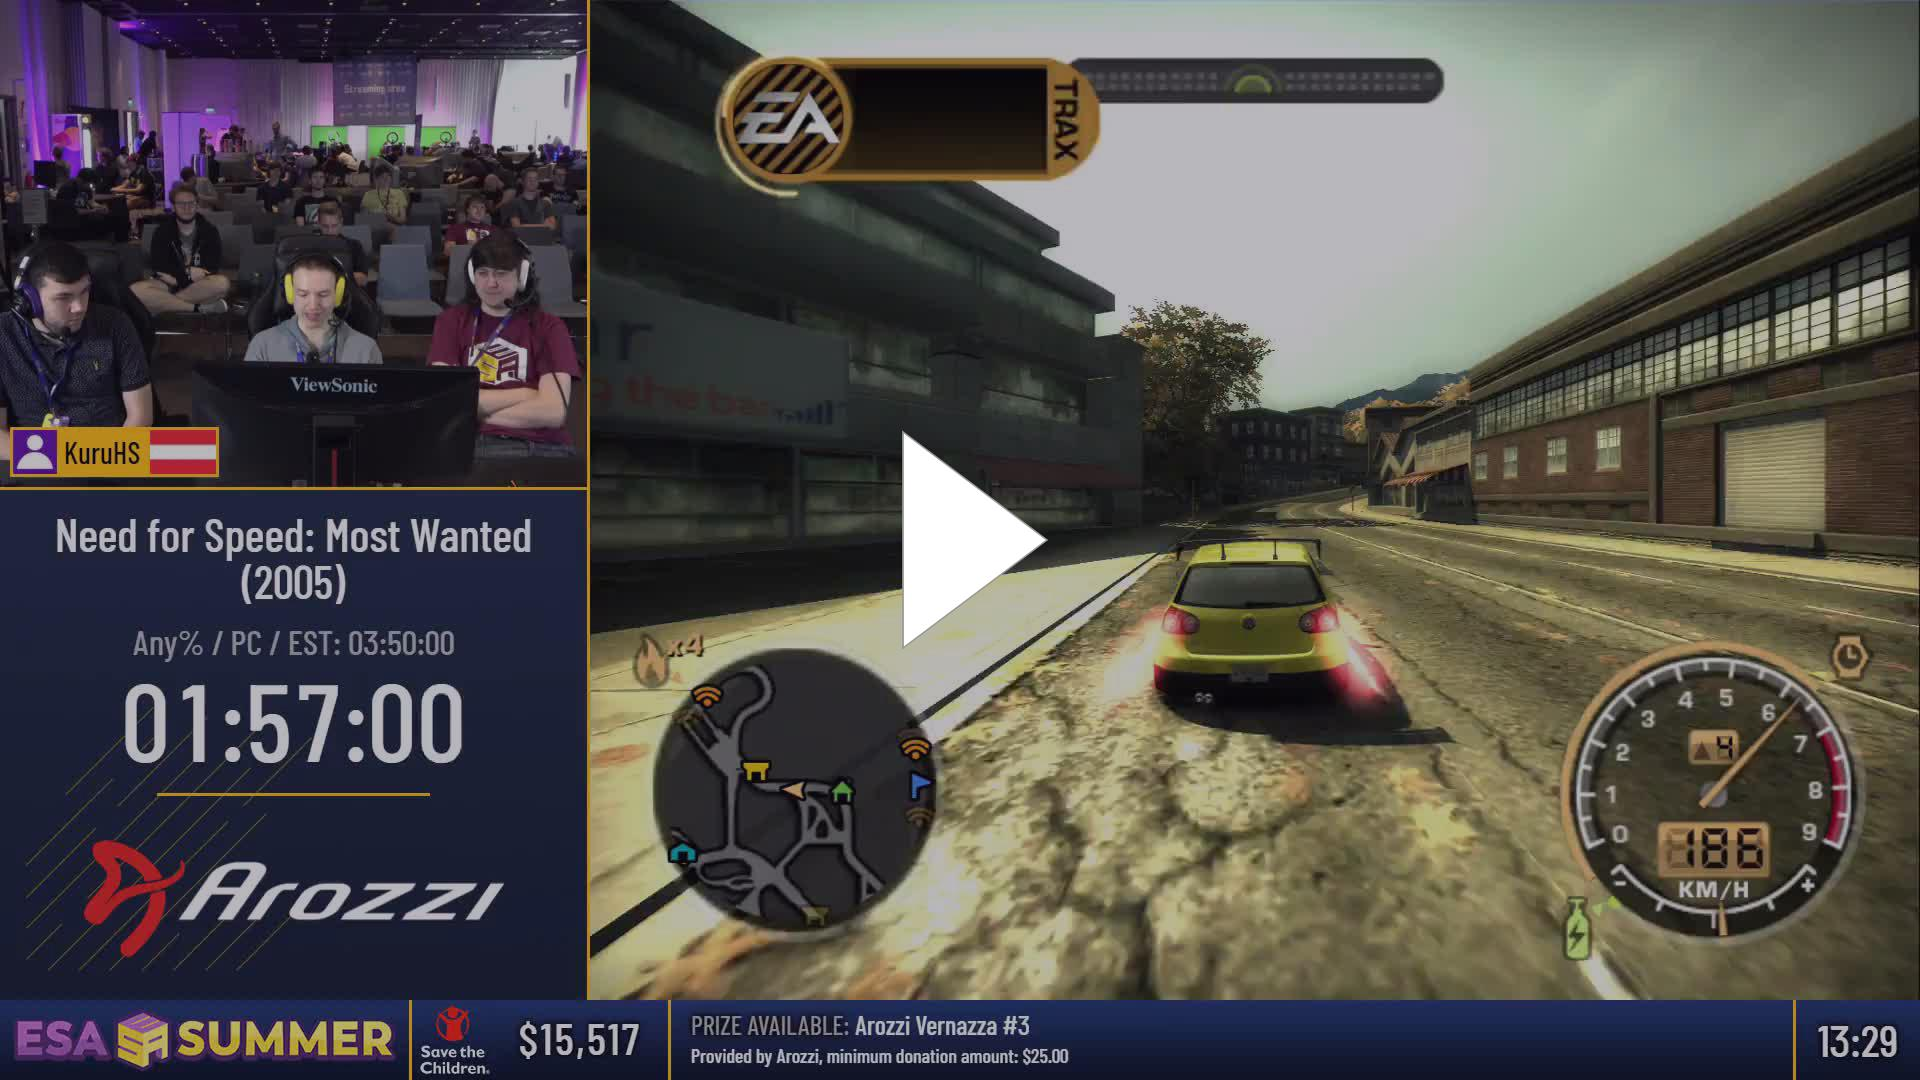 ESAMarathon - #ESASummer18 - Need for Speed: Most Wanted (2005) (Any